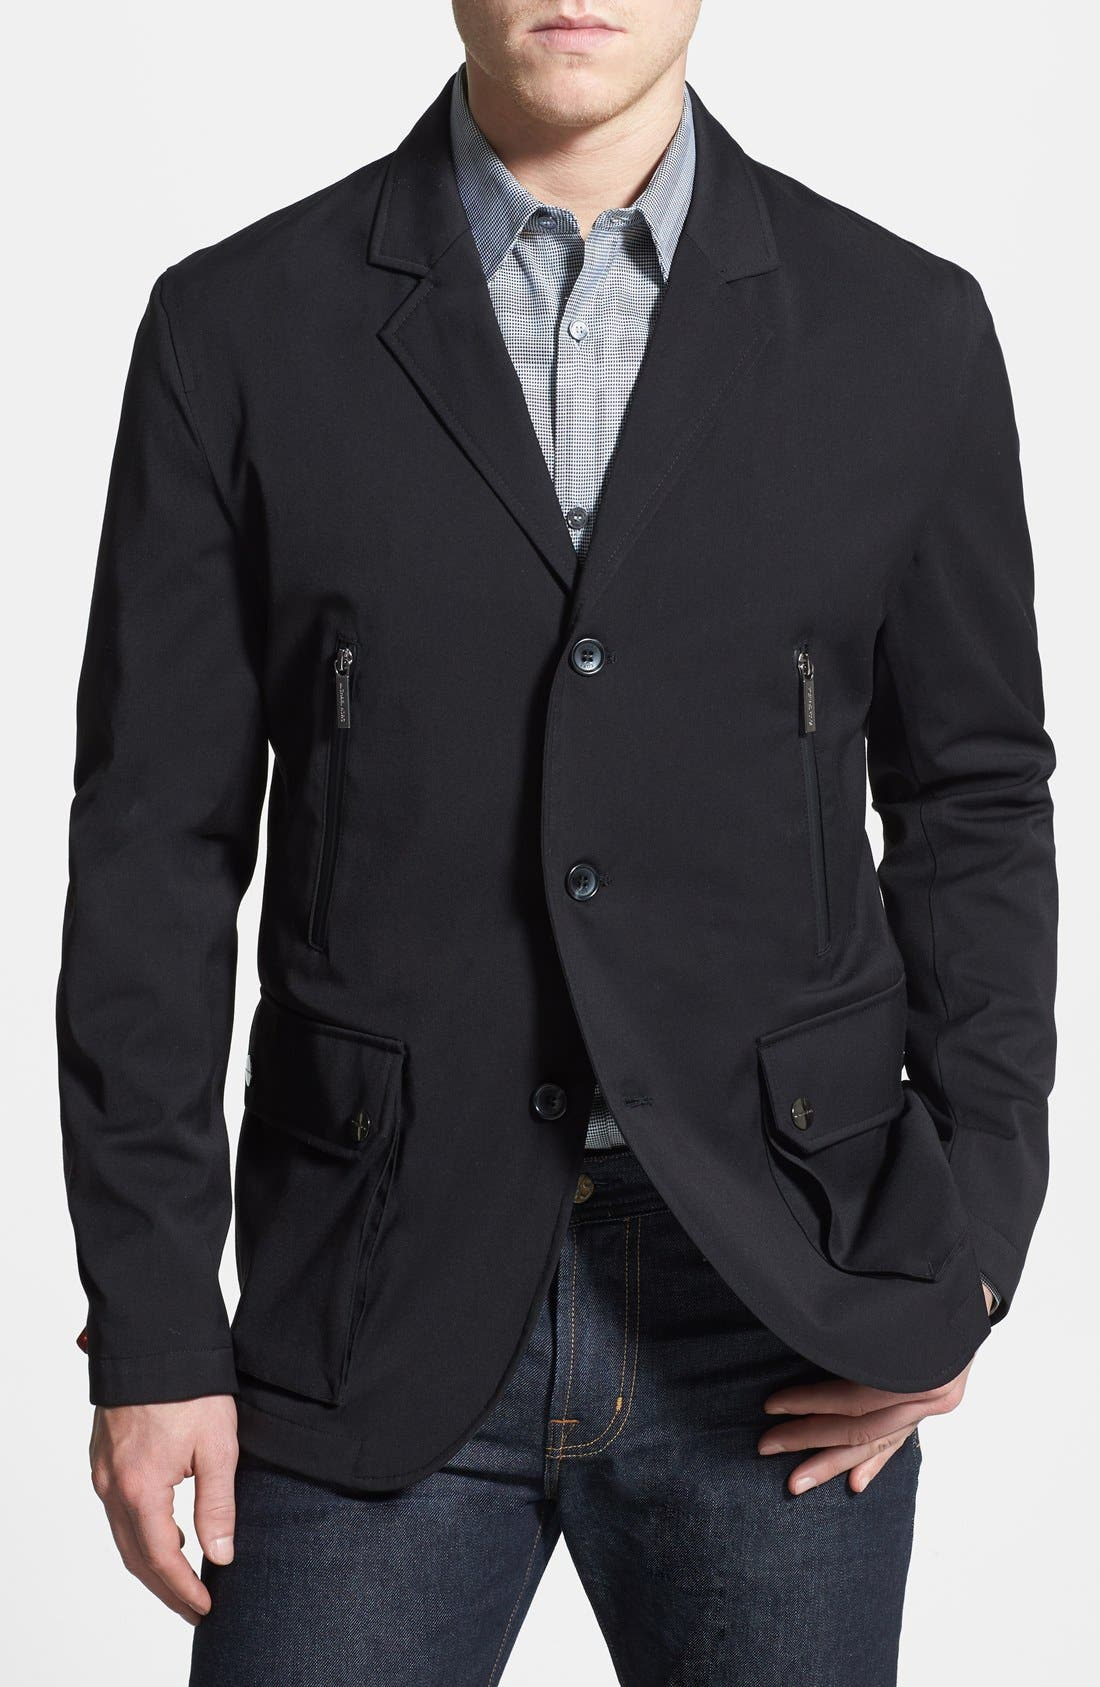 Alternate Image 1 Selected - Michael Kors Water Resistant Travel Sportcoat